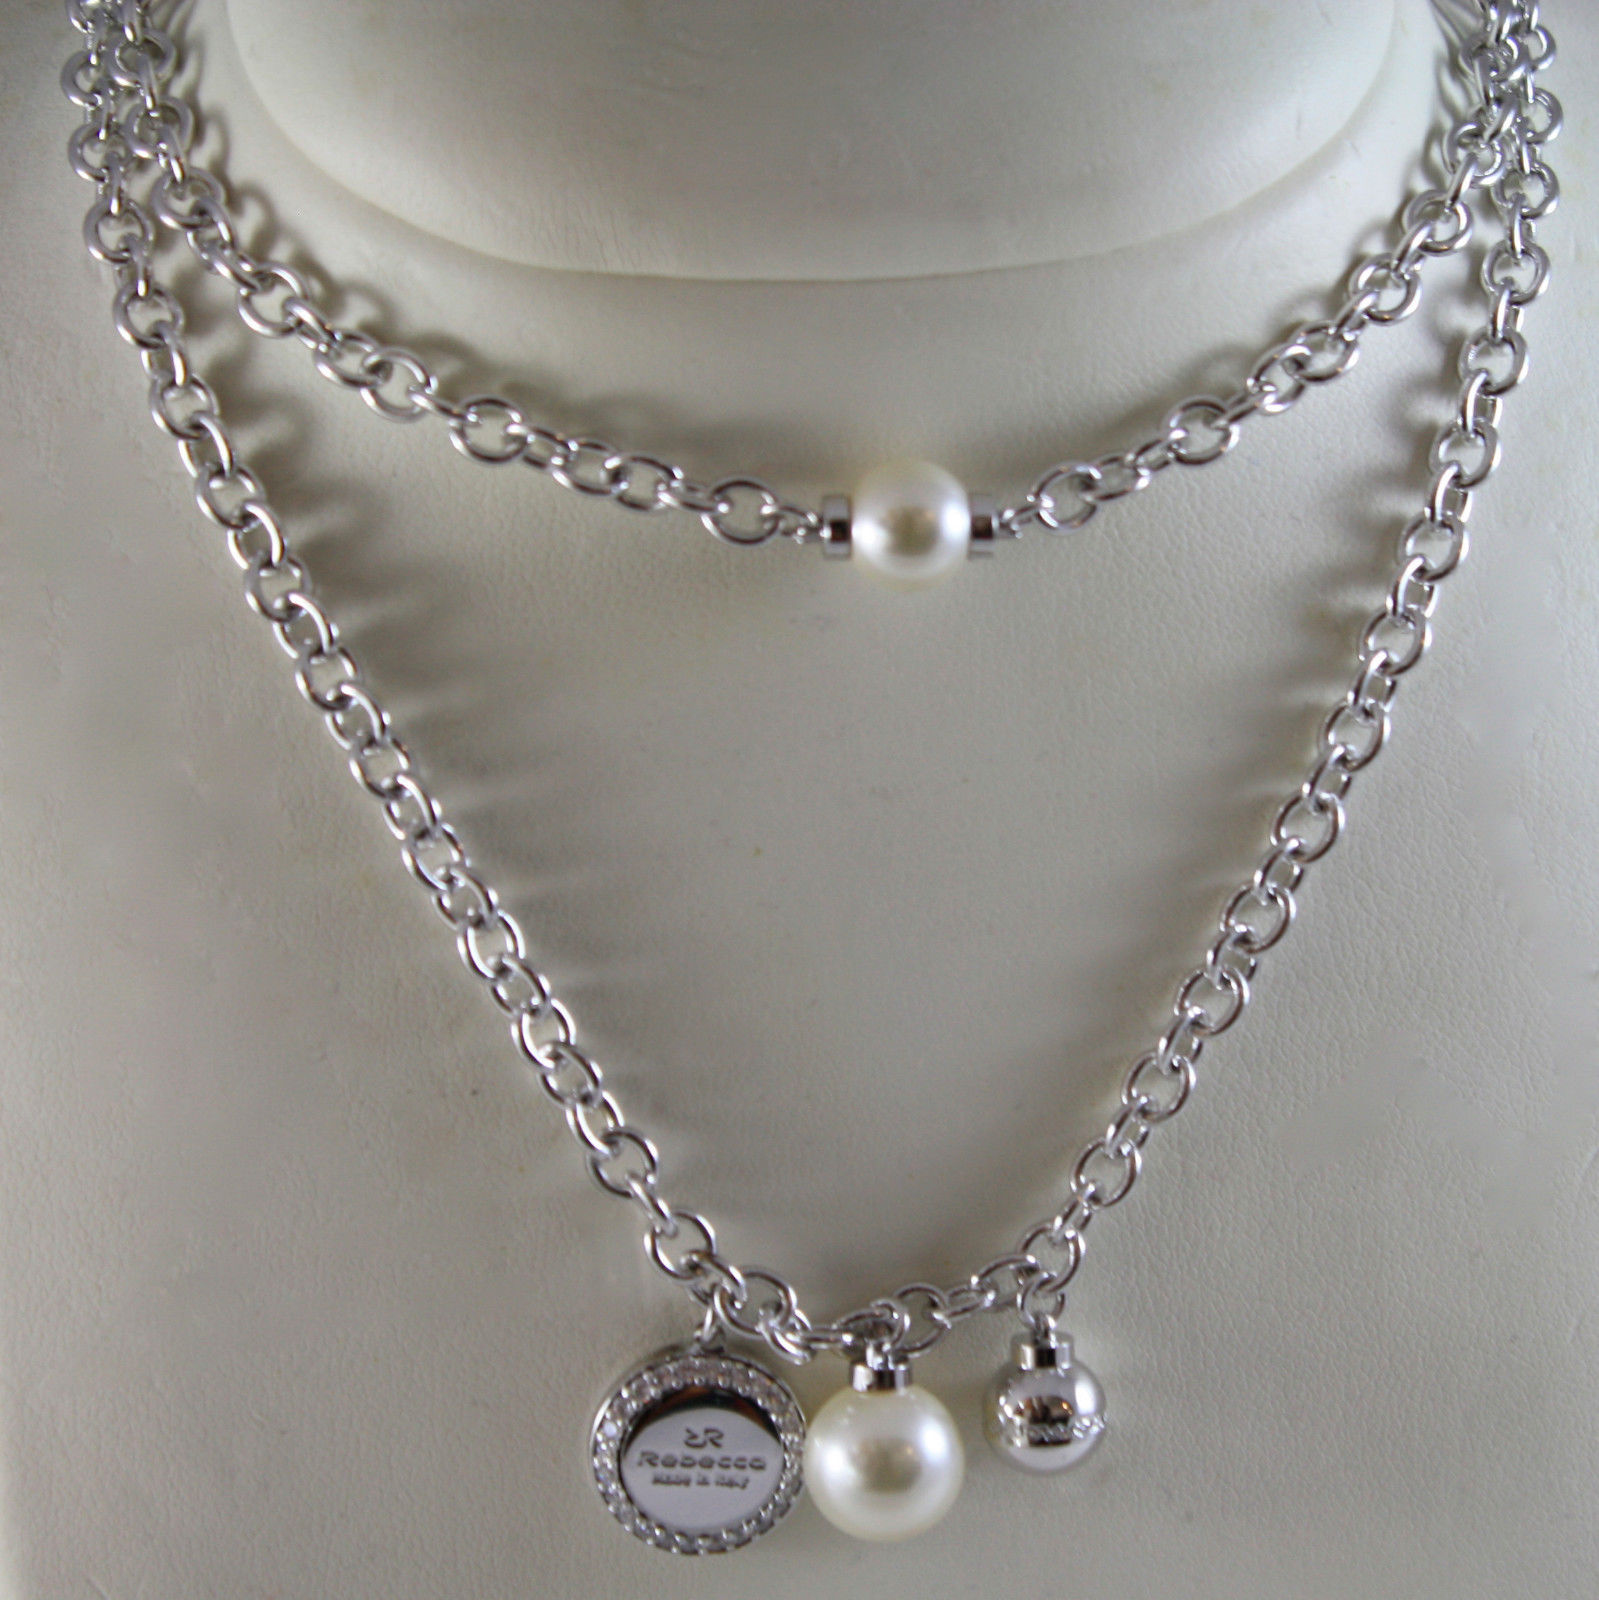 WHITE GOLD PLATED BRONZE REBECCA PEARL NECKLACE HOLLYWOOD BHOKBB08 MADE IN ITALY